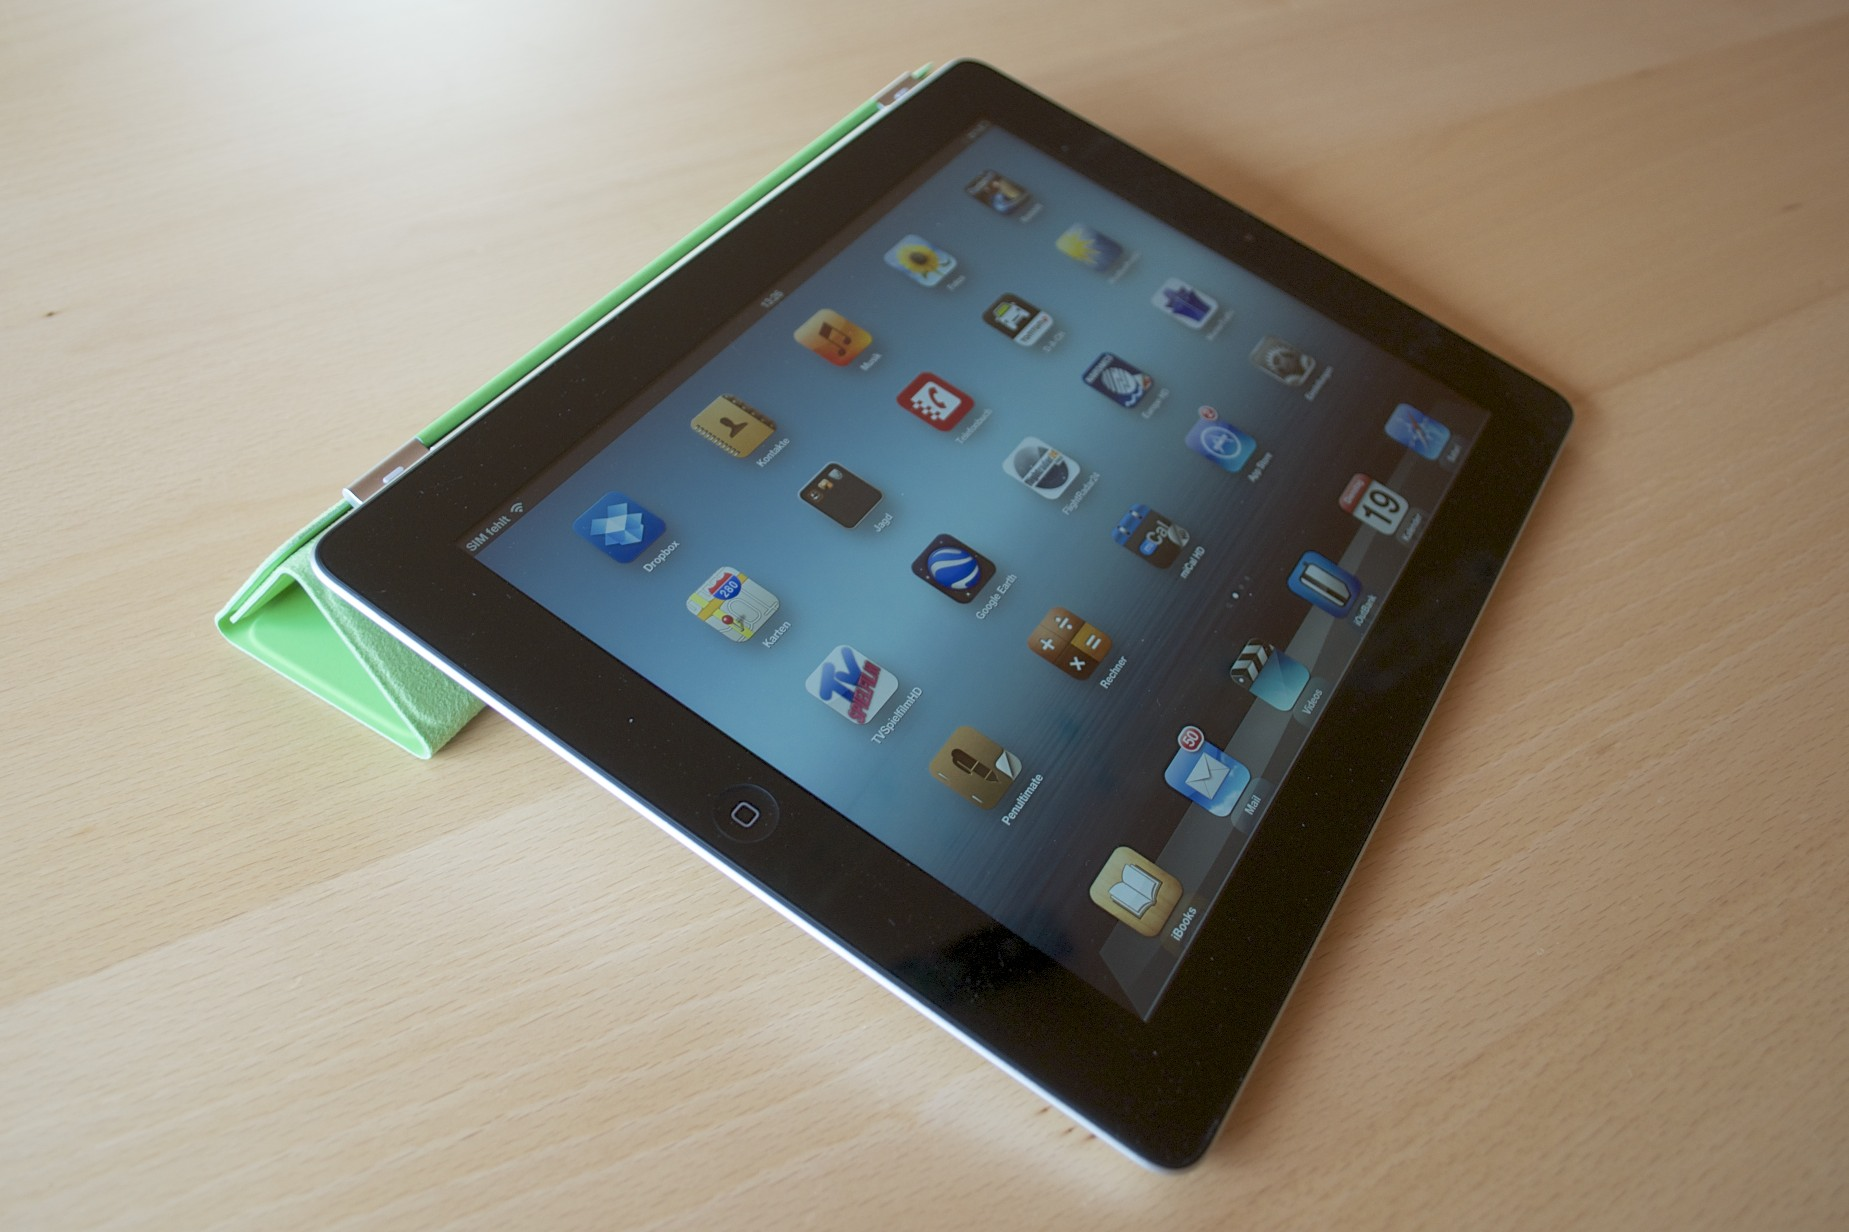 das neue ipad von apple im test seite 2 navigation gps blitzer pois. Black Bedroom Furniture Sets. Home Design Ideas